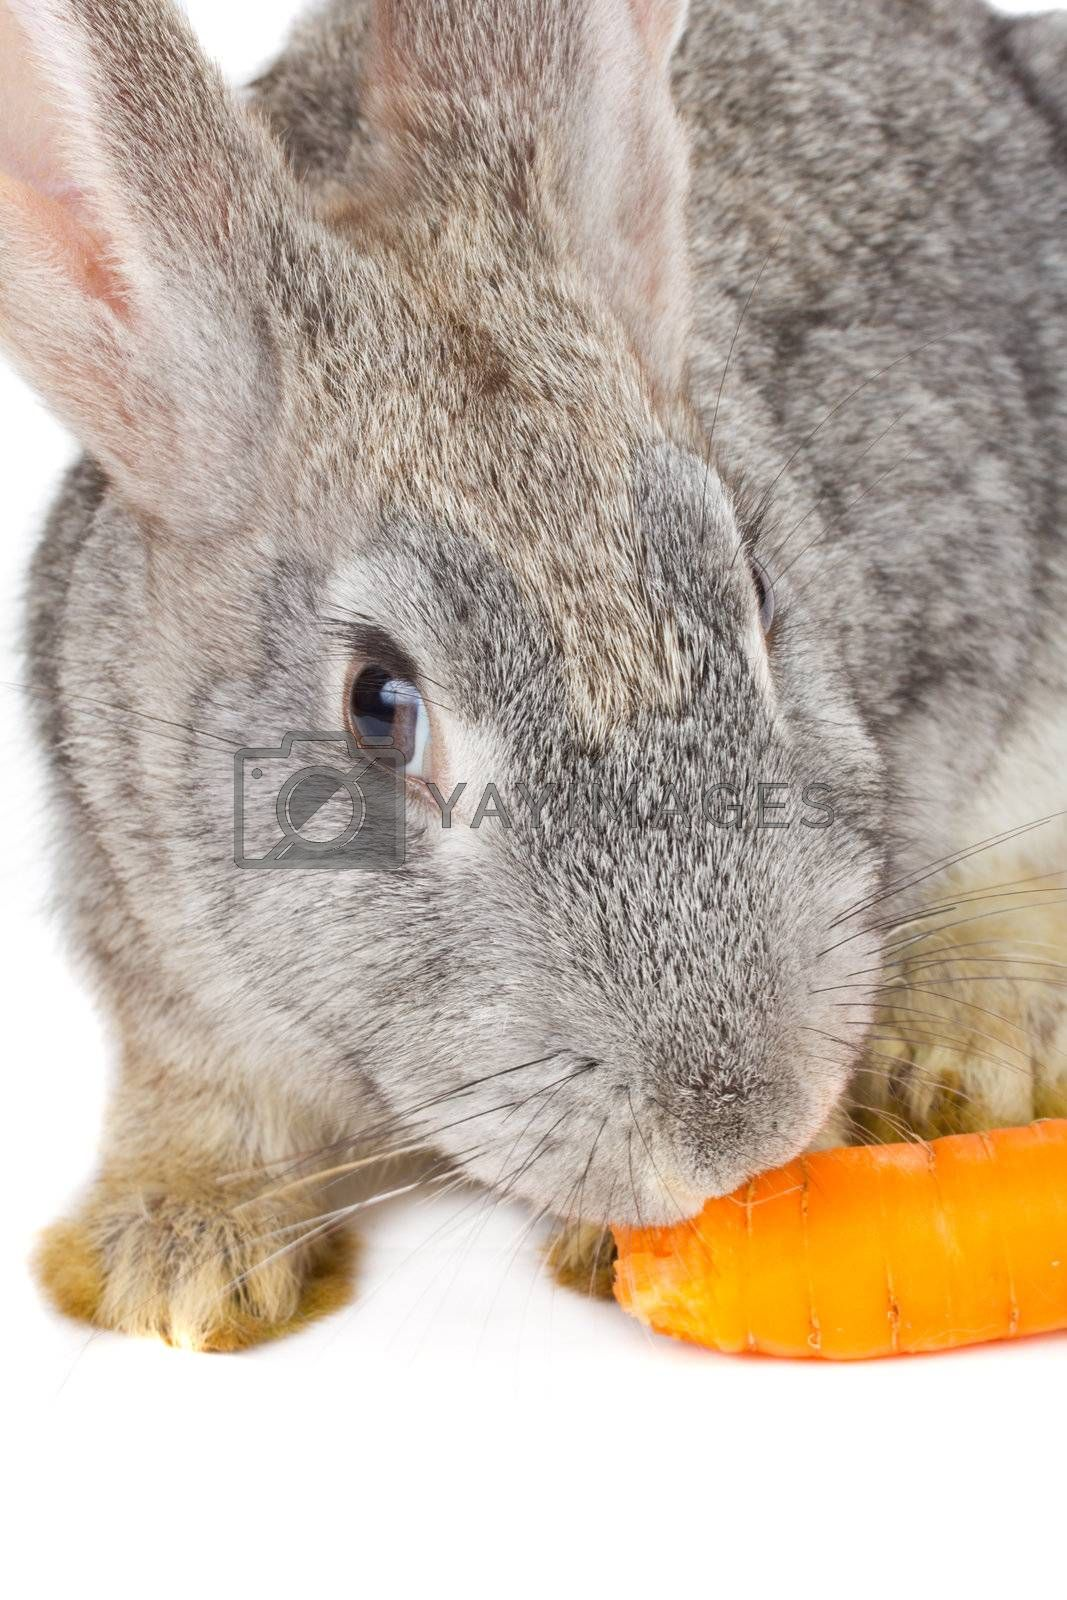 close-up rabbit eating carrot, isolated on white